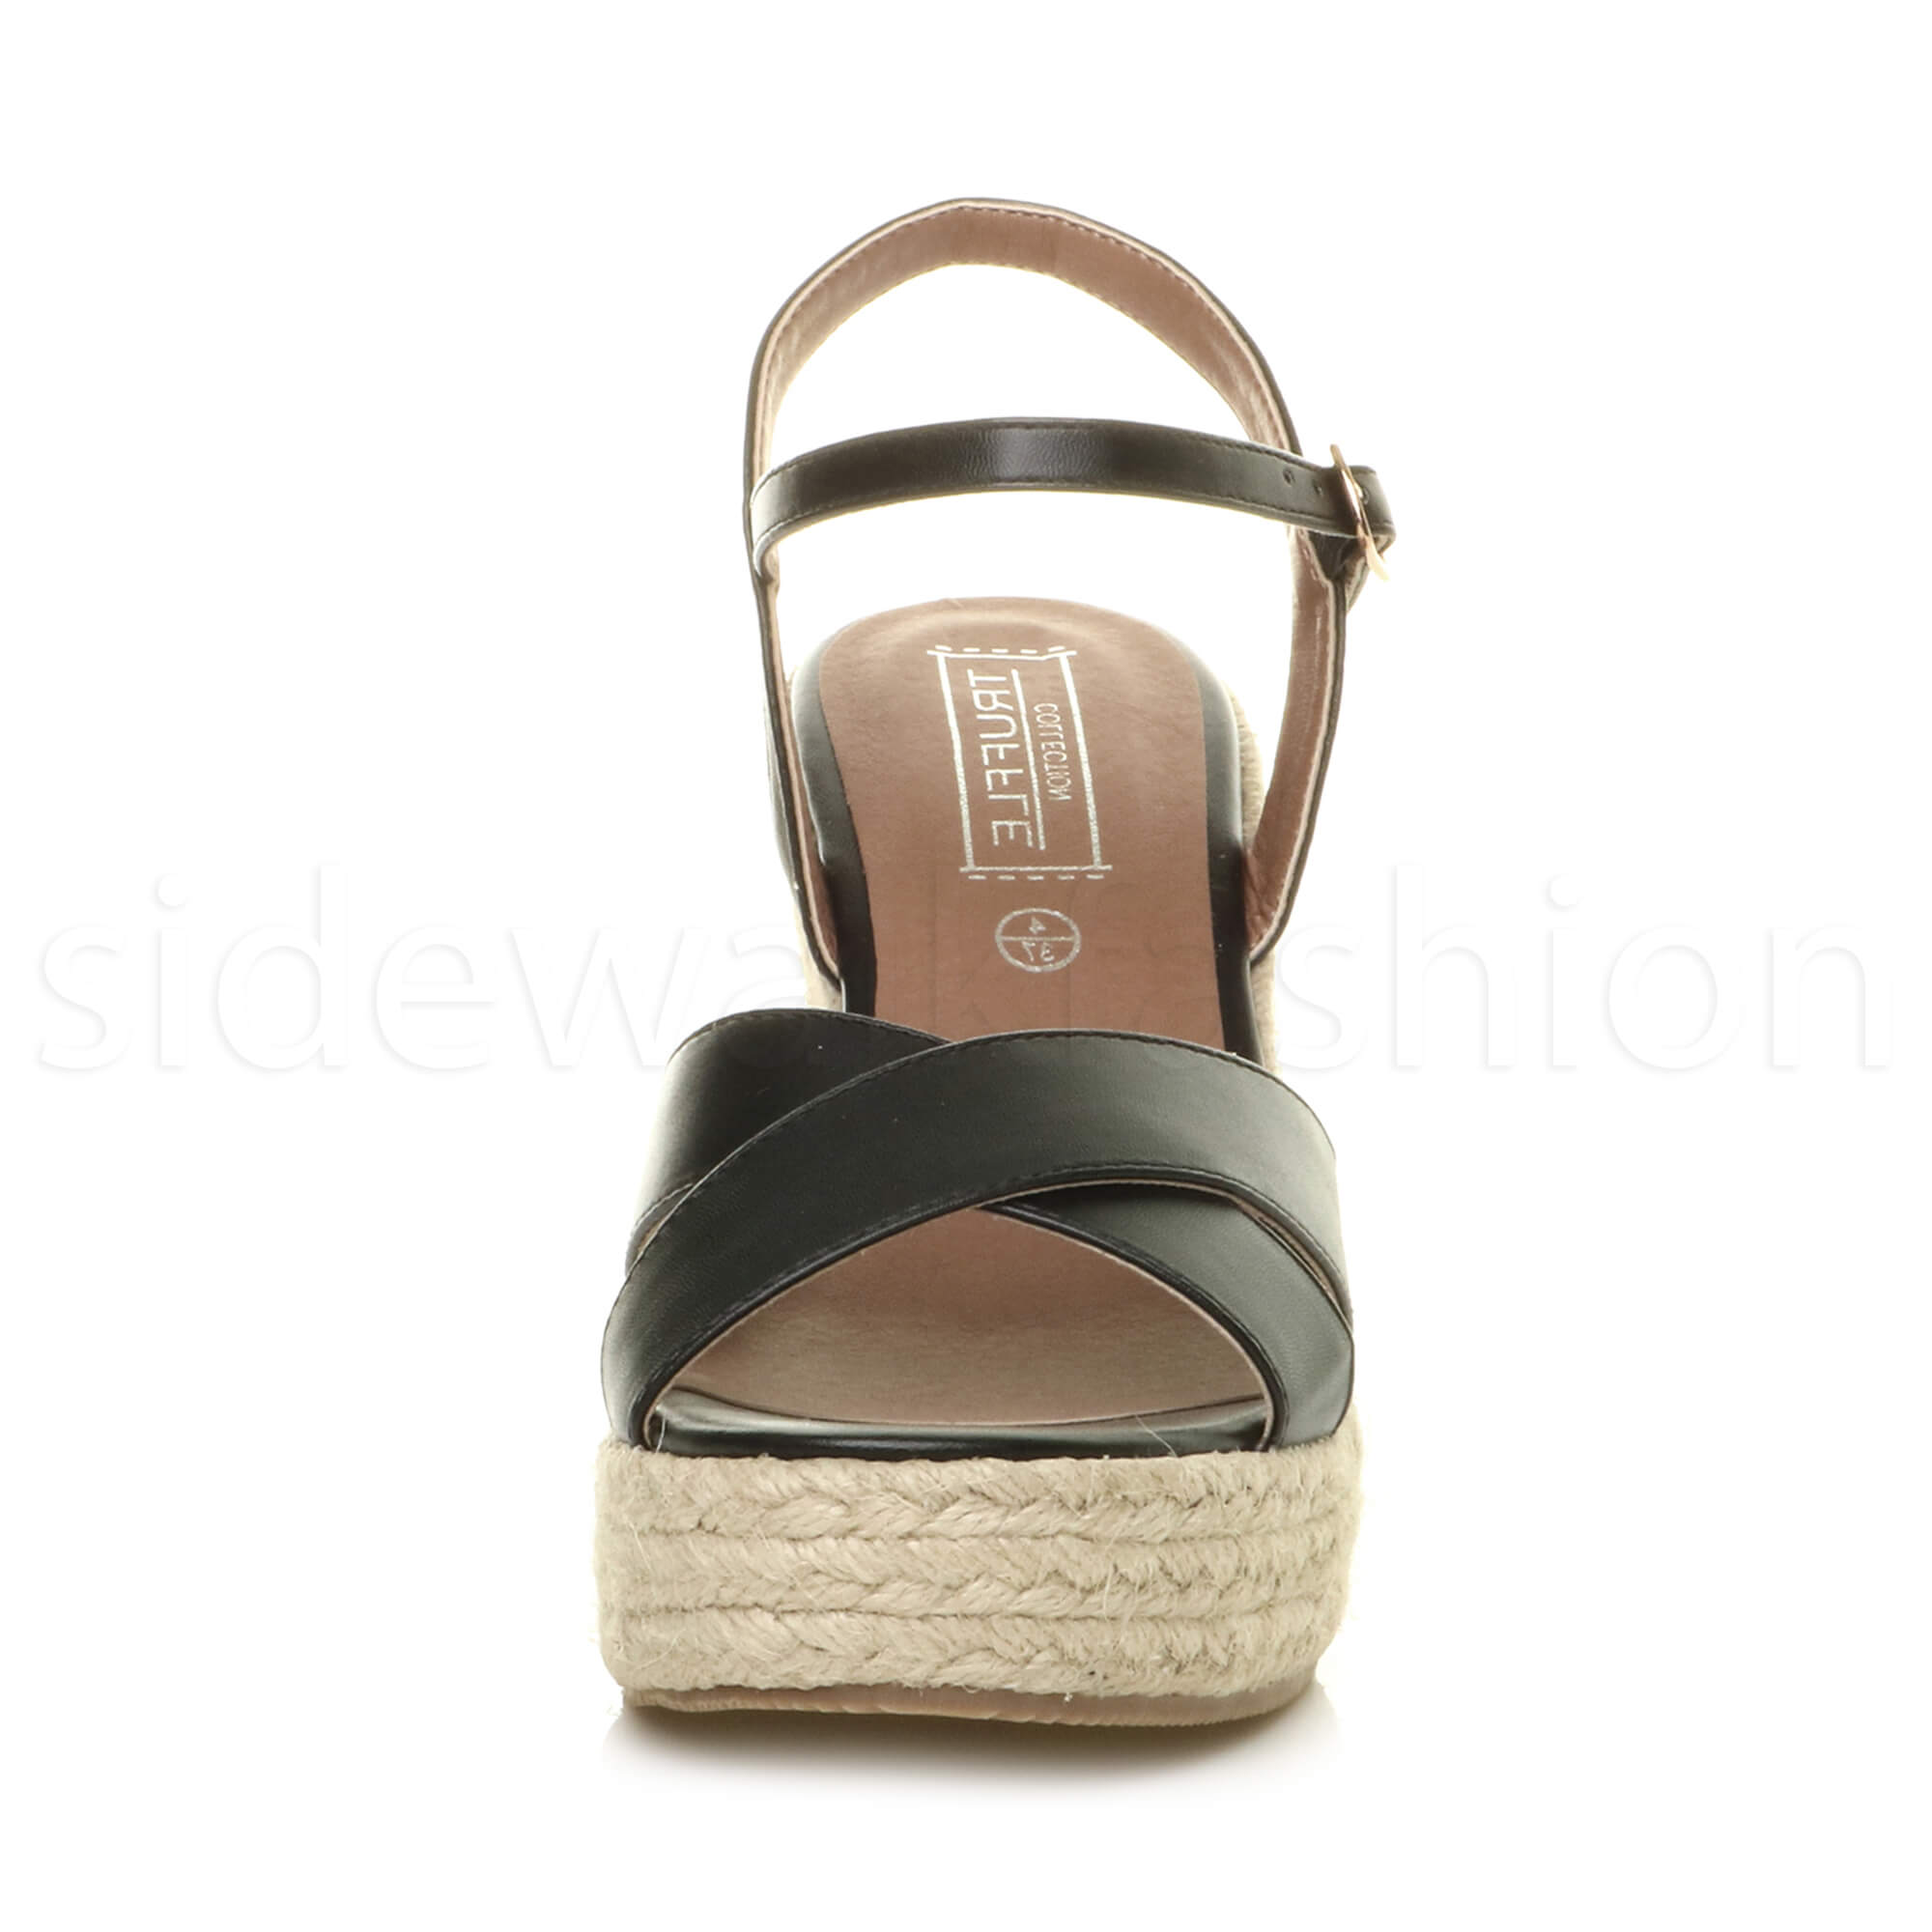 Womens-ladies-high-heel-wedge-rope-espadrilles-platform-strappy-sandals-size